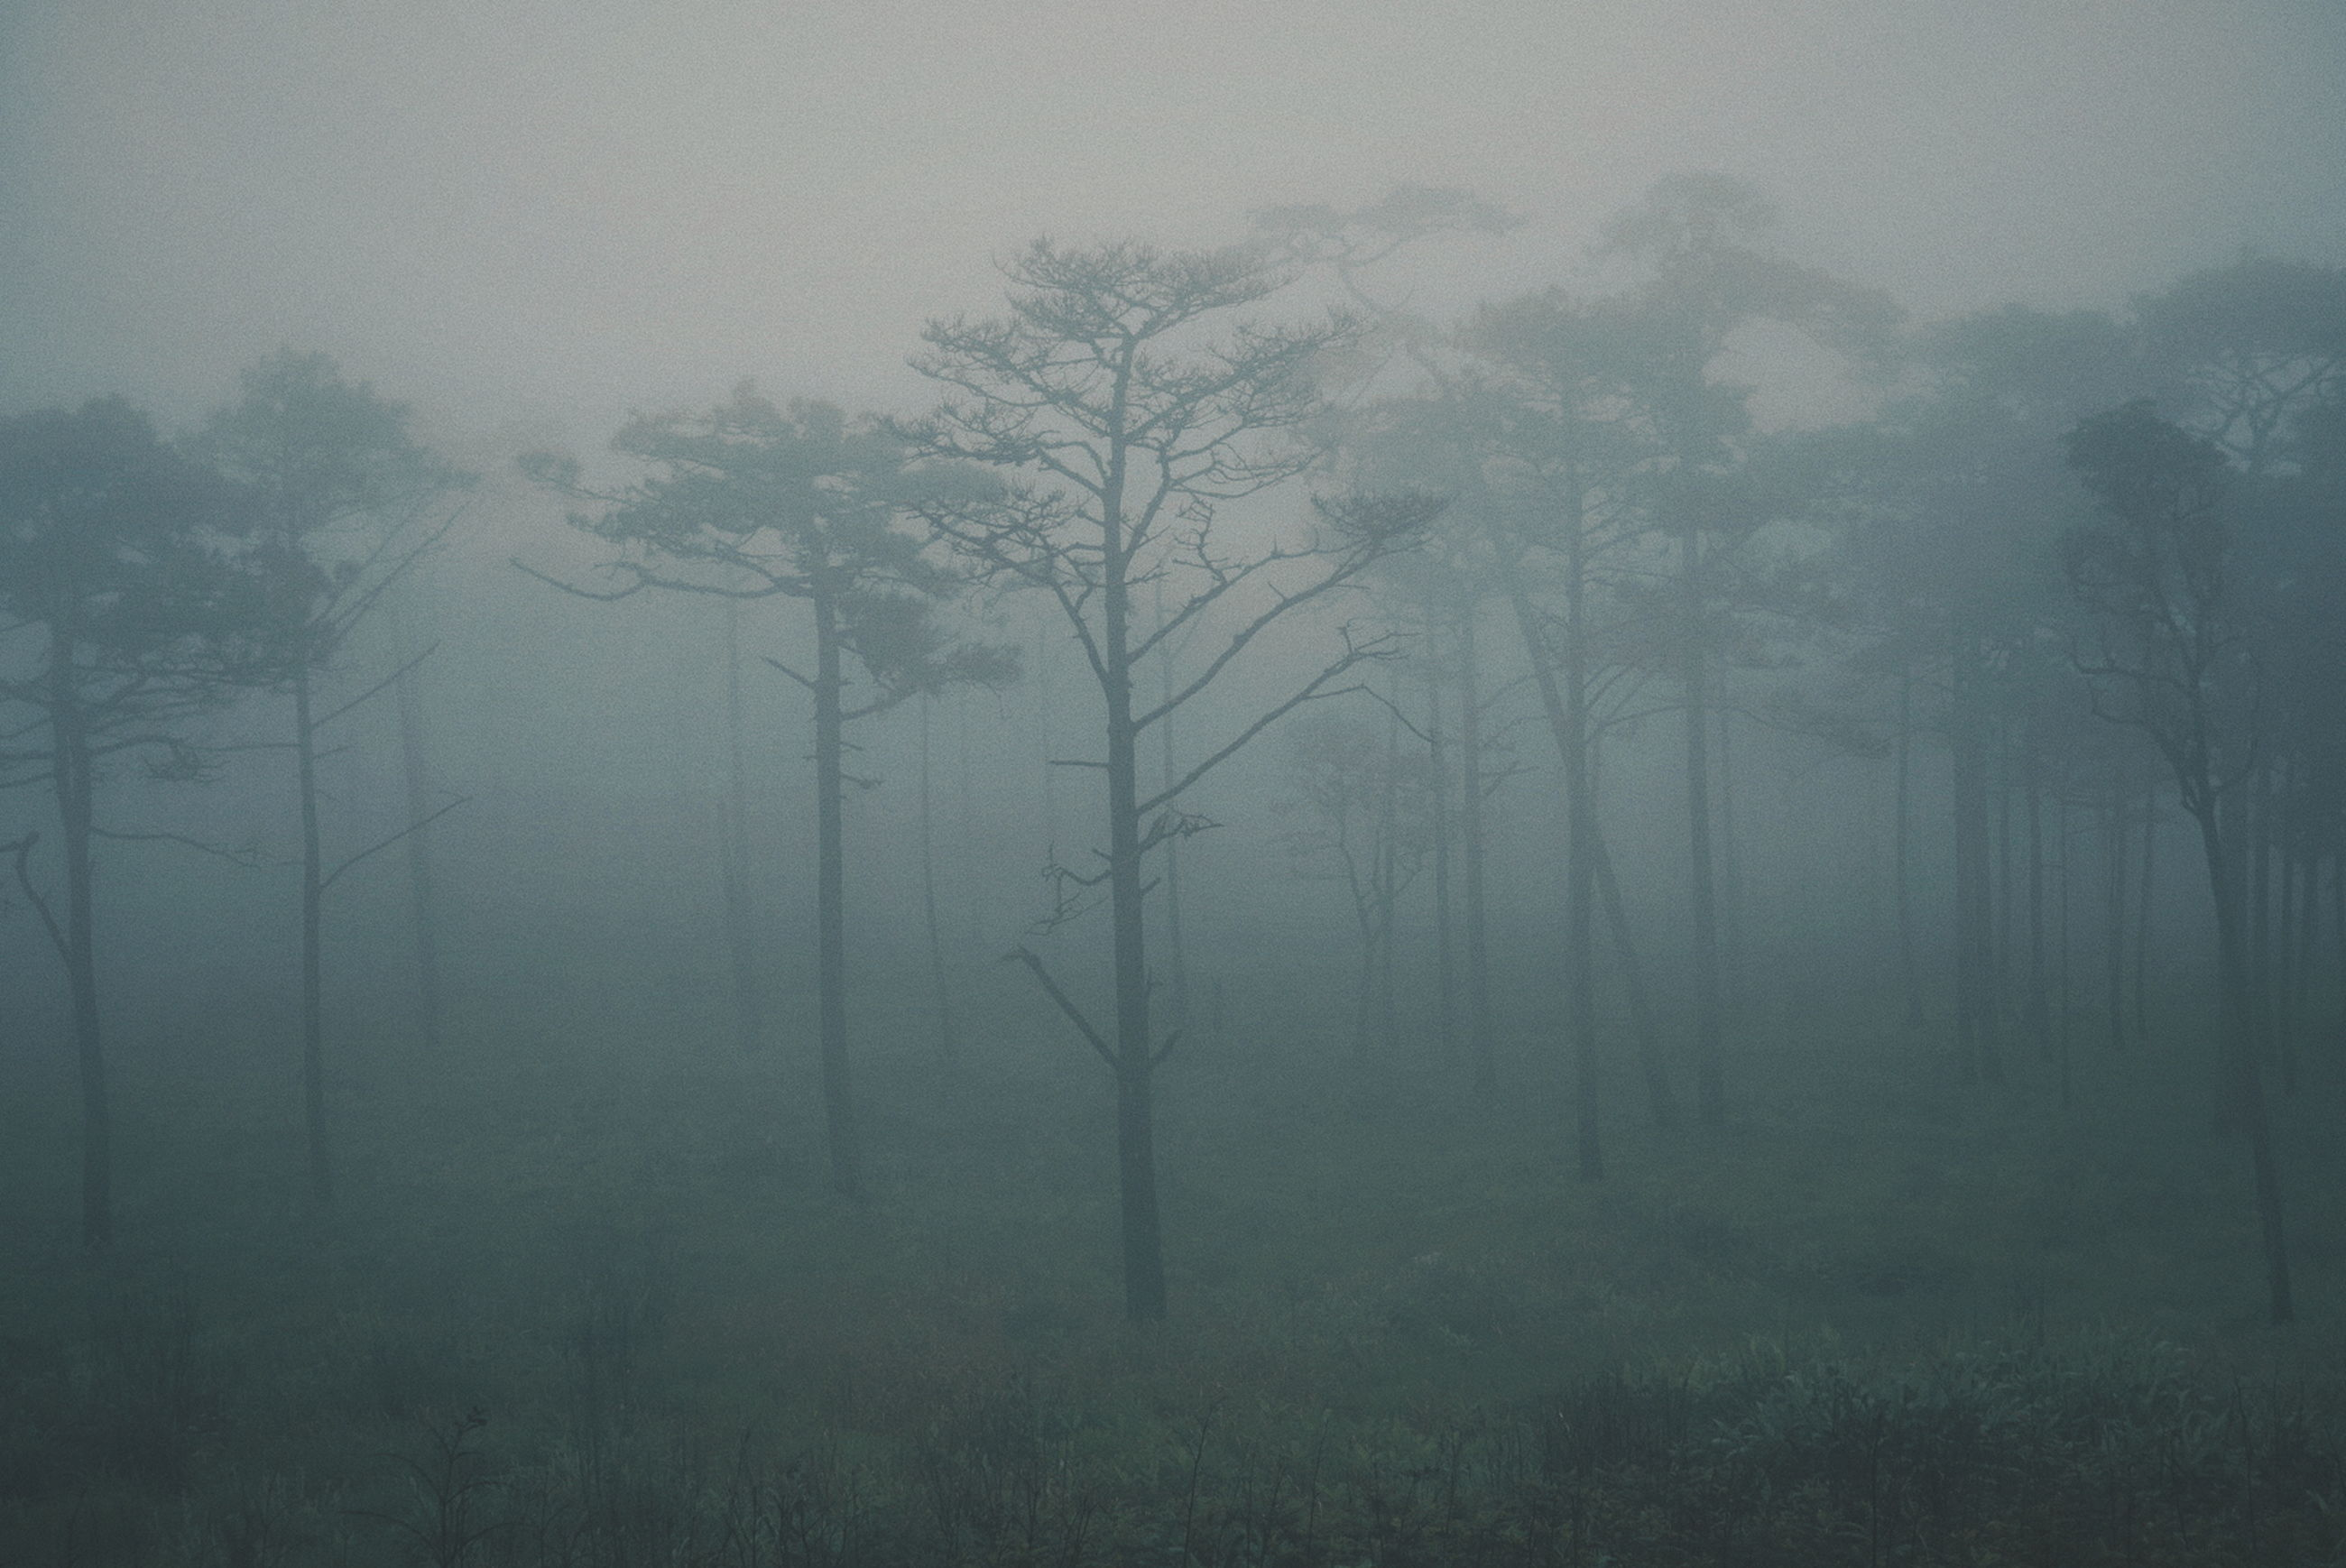 tree, fog, beauty in nature, plant, tranquility, tranquil scene, no people, land, hazy, environment, forest, nature, landscape, non-urban scene, scenics - nature, trunk, tree trunk, day, growth, outdoors